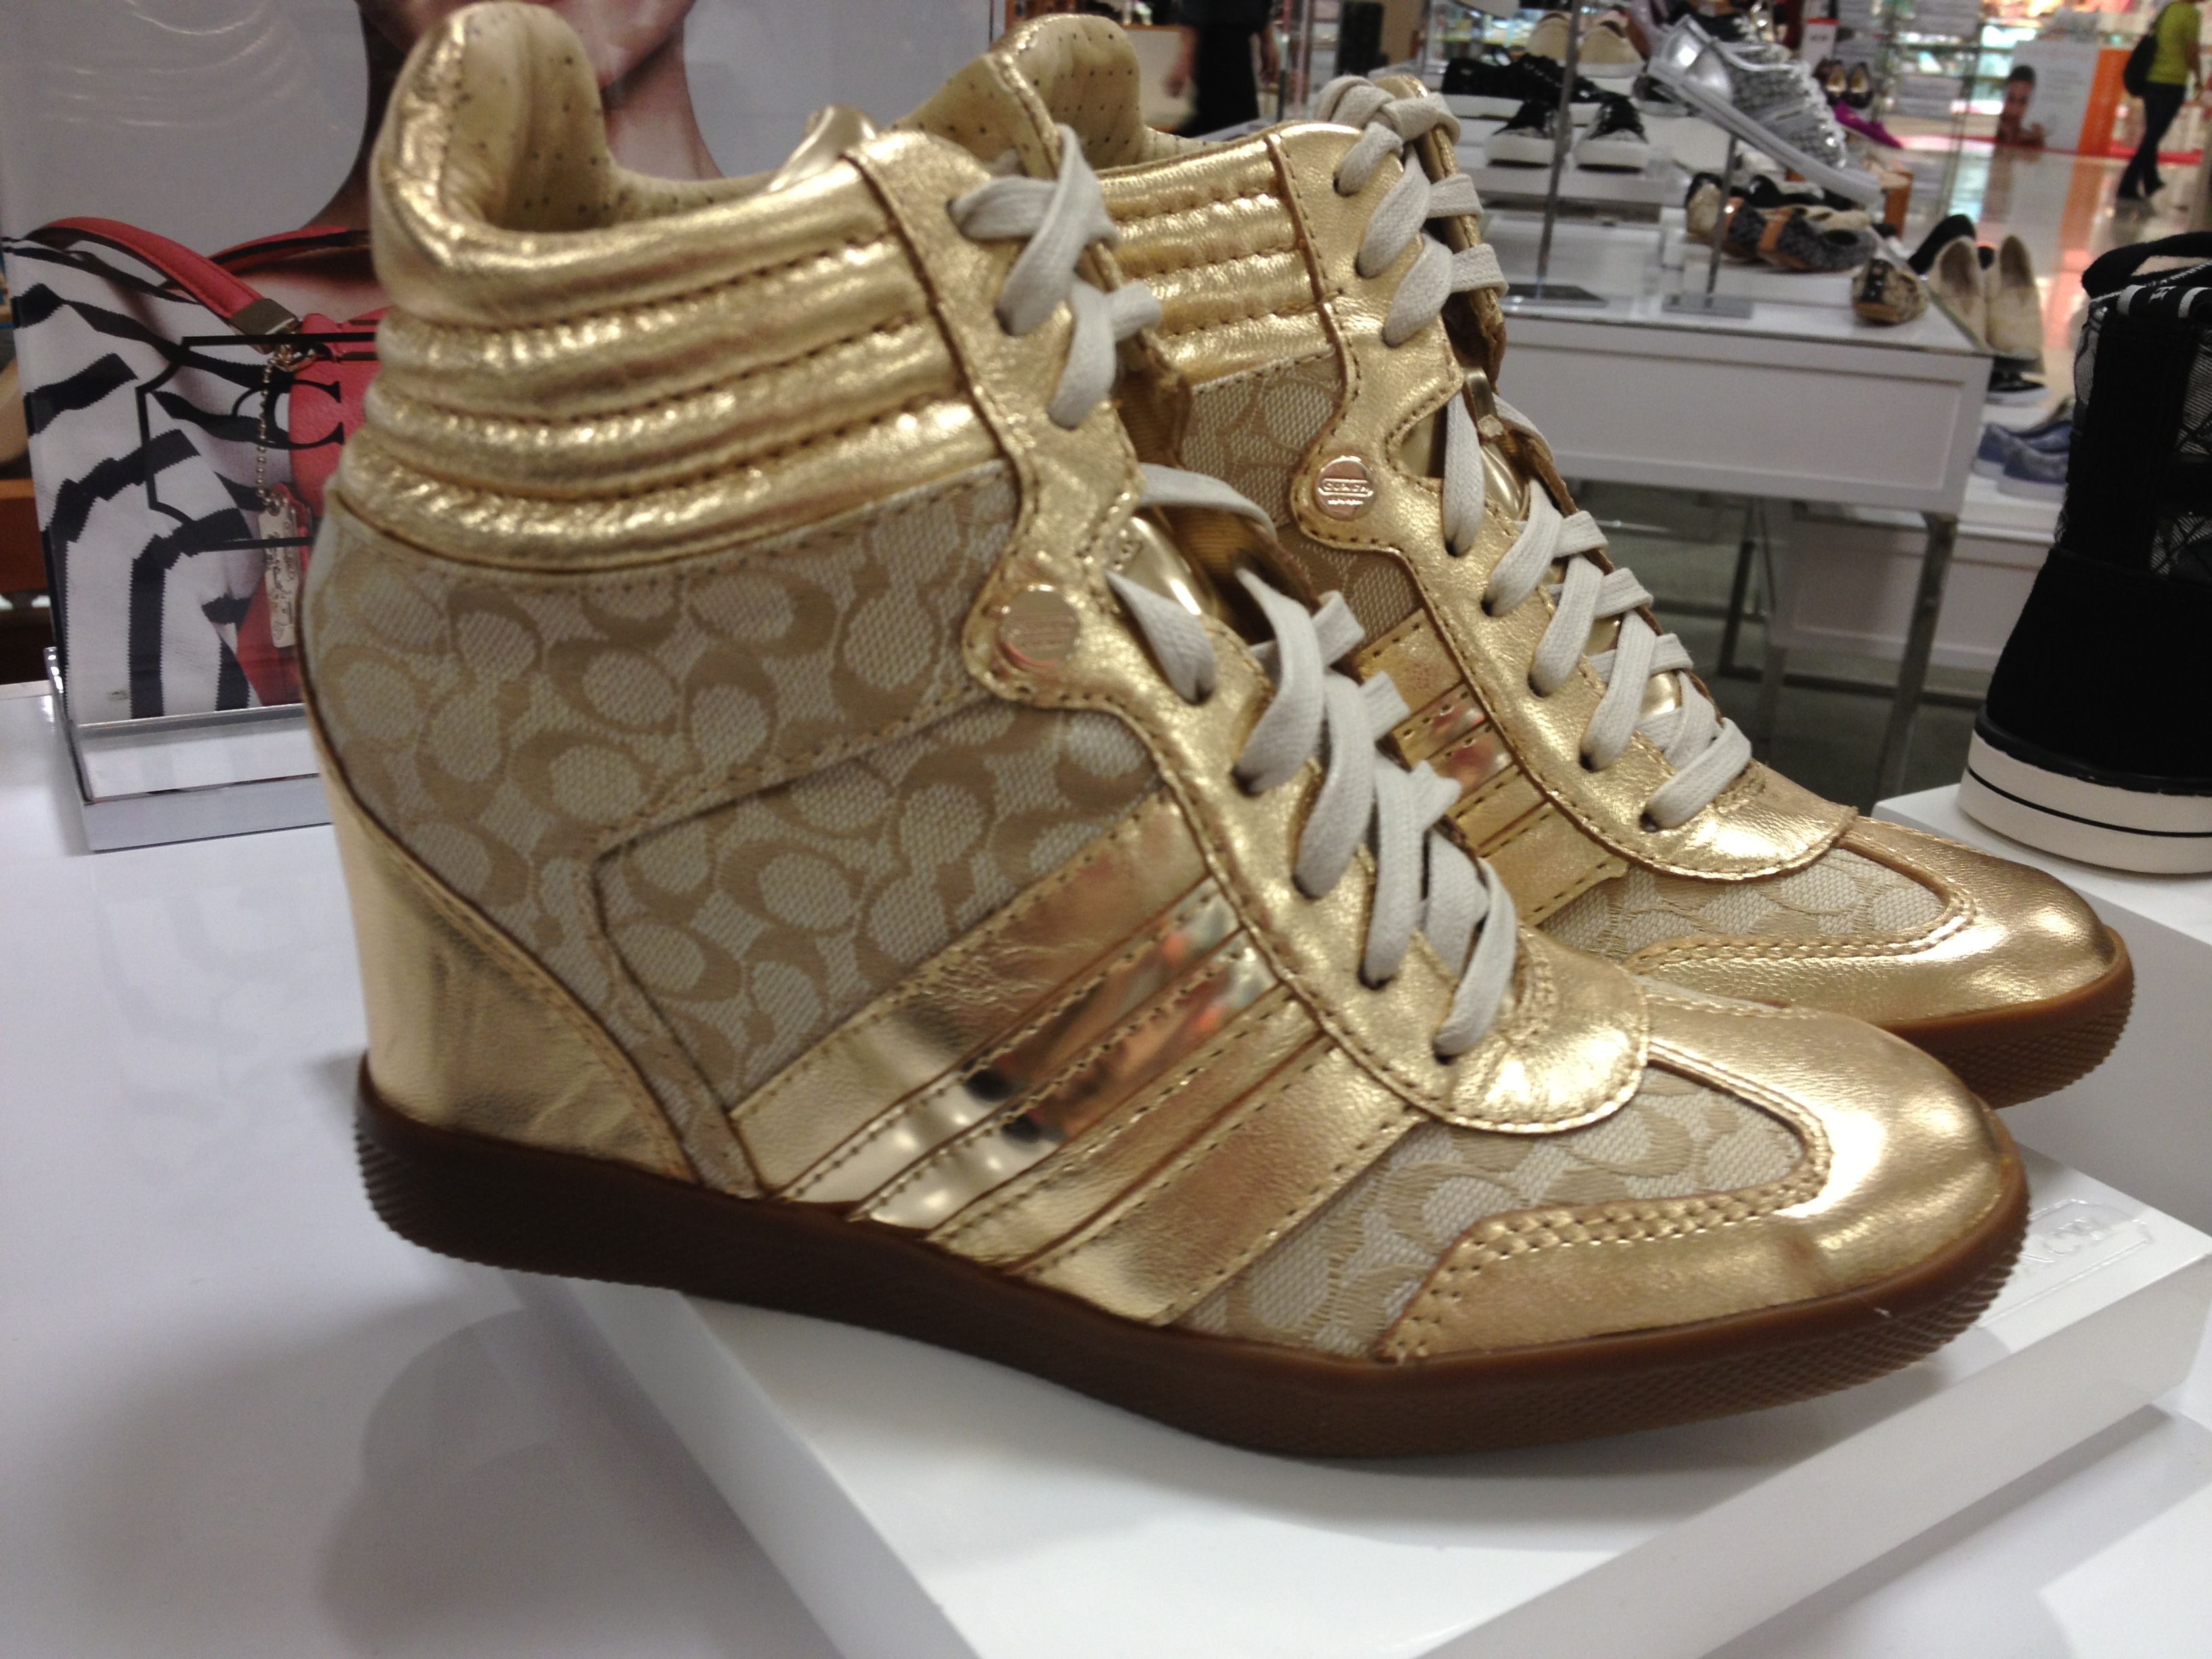 fa816aaa Coach wedge sneakers $129.00 at Macy's | shoes | Sneakers, Wedge ...